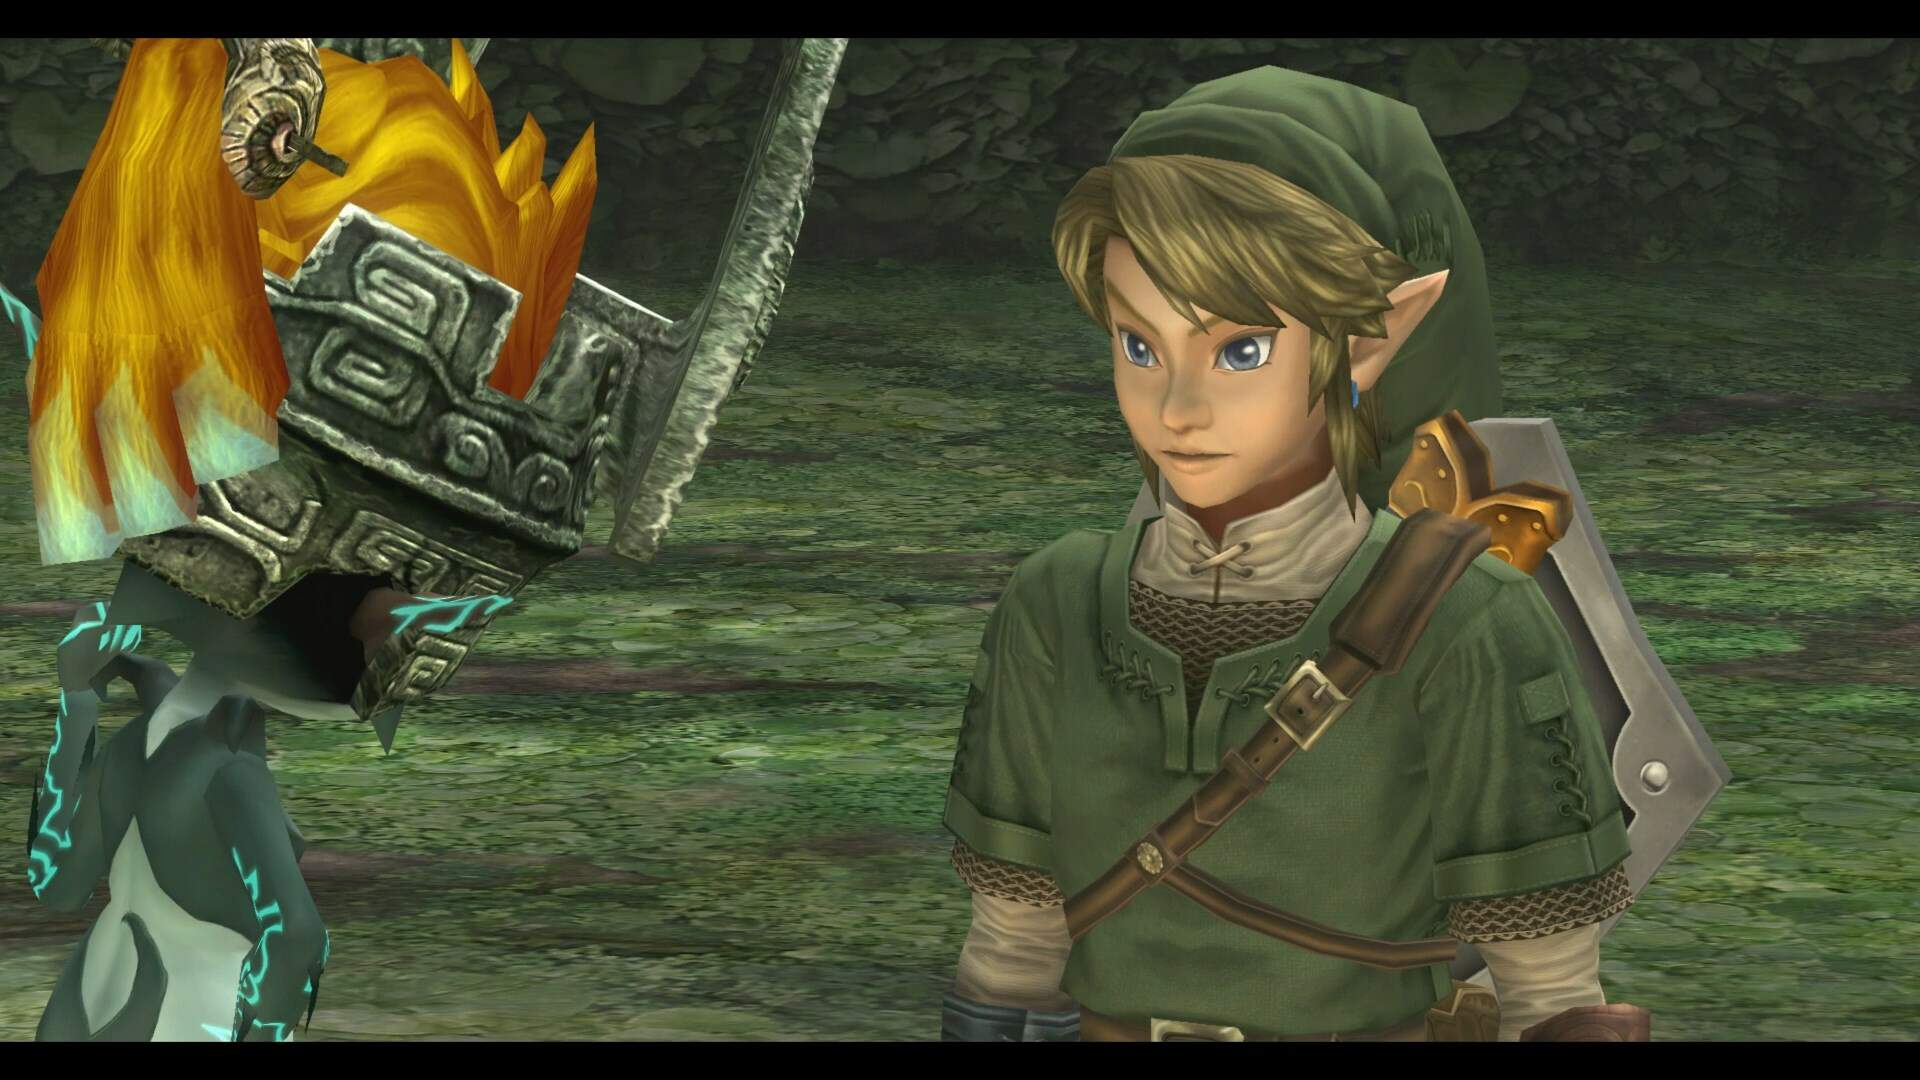 Zelda Glitch Hunters Discover a GameCube Emulator That Could Run on the Switch